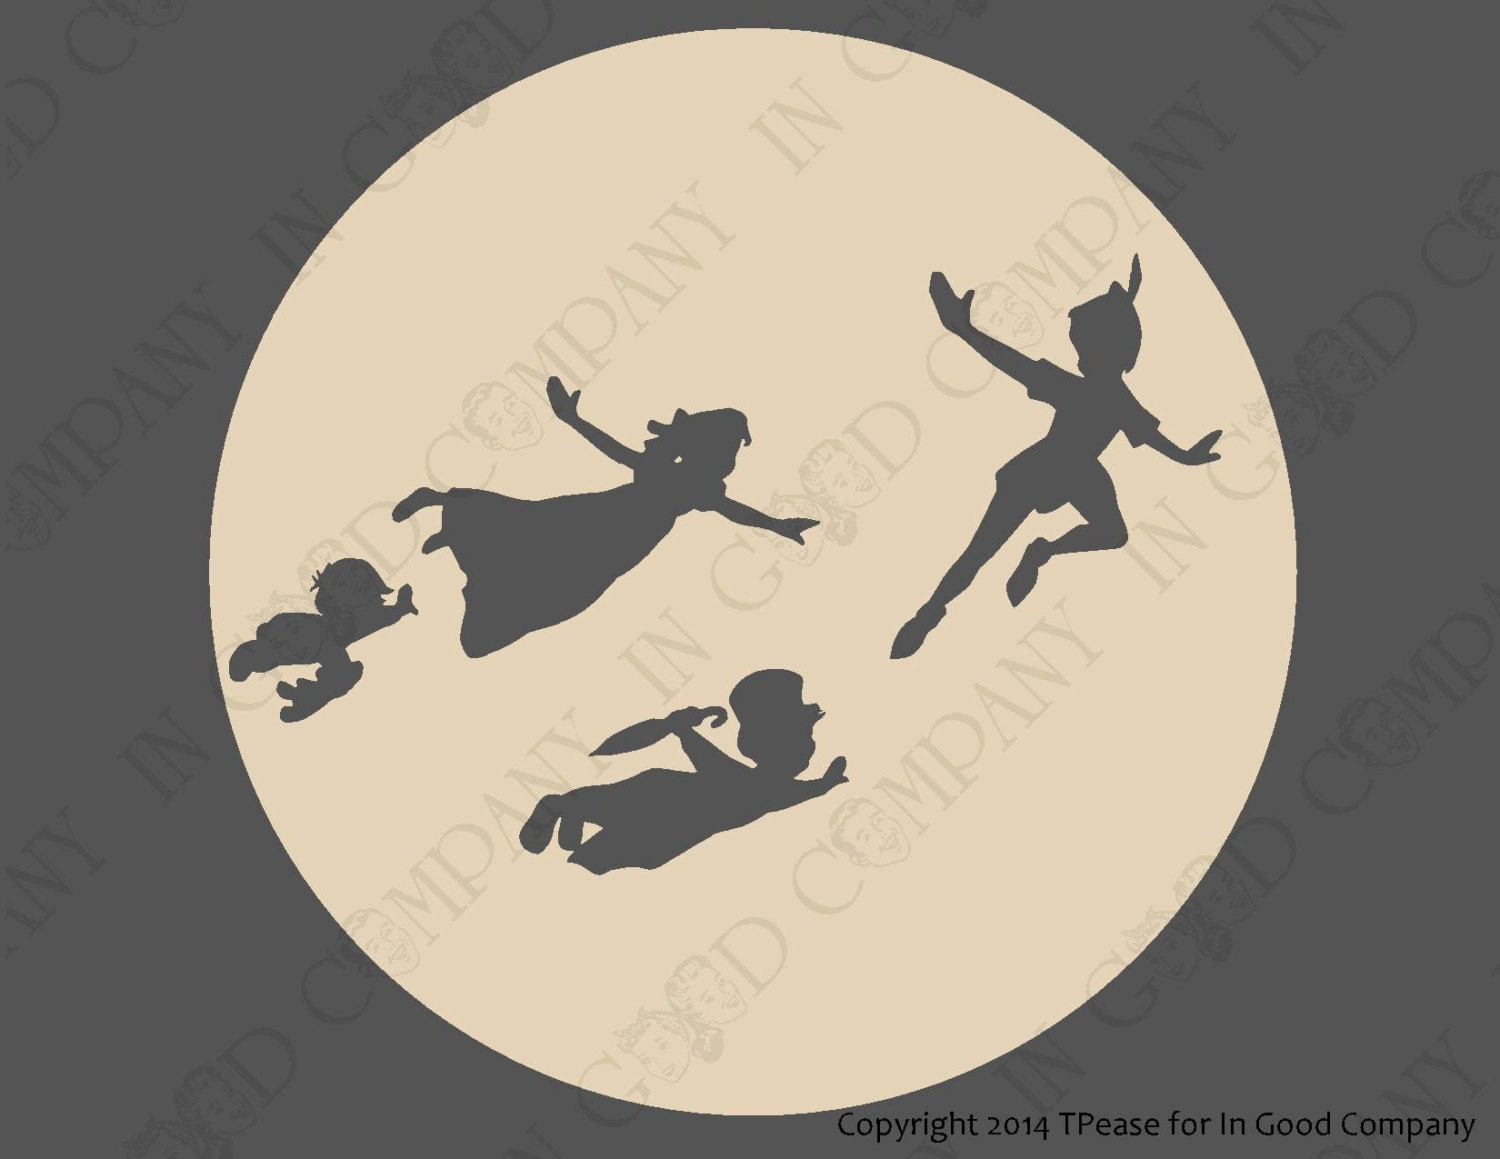 peter pan inspired wall decal sticker 8 or 10. Black Bedroom Furniture Sets. Home Design Ideas